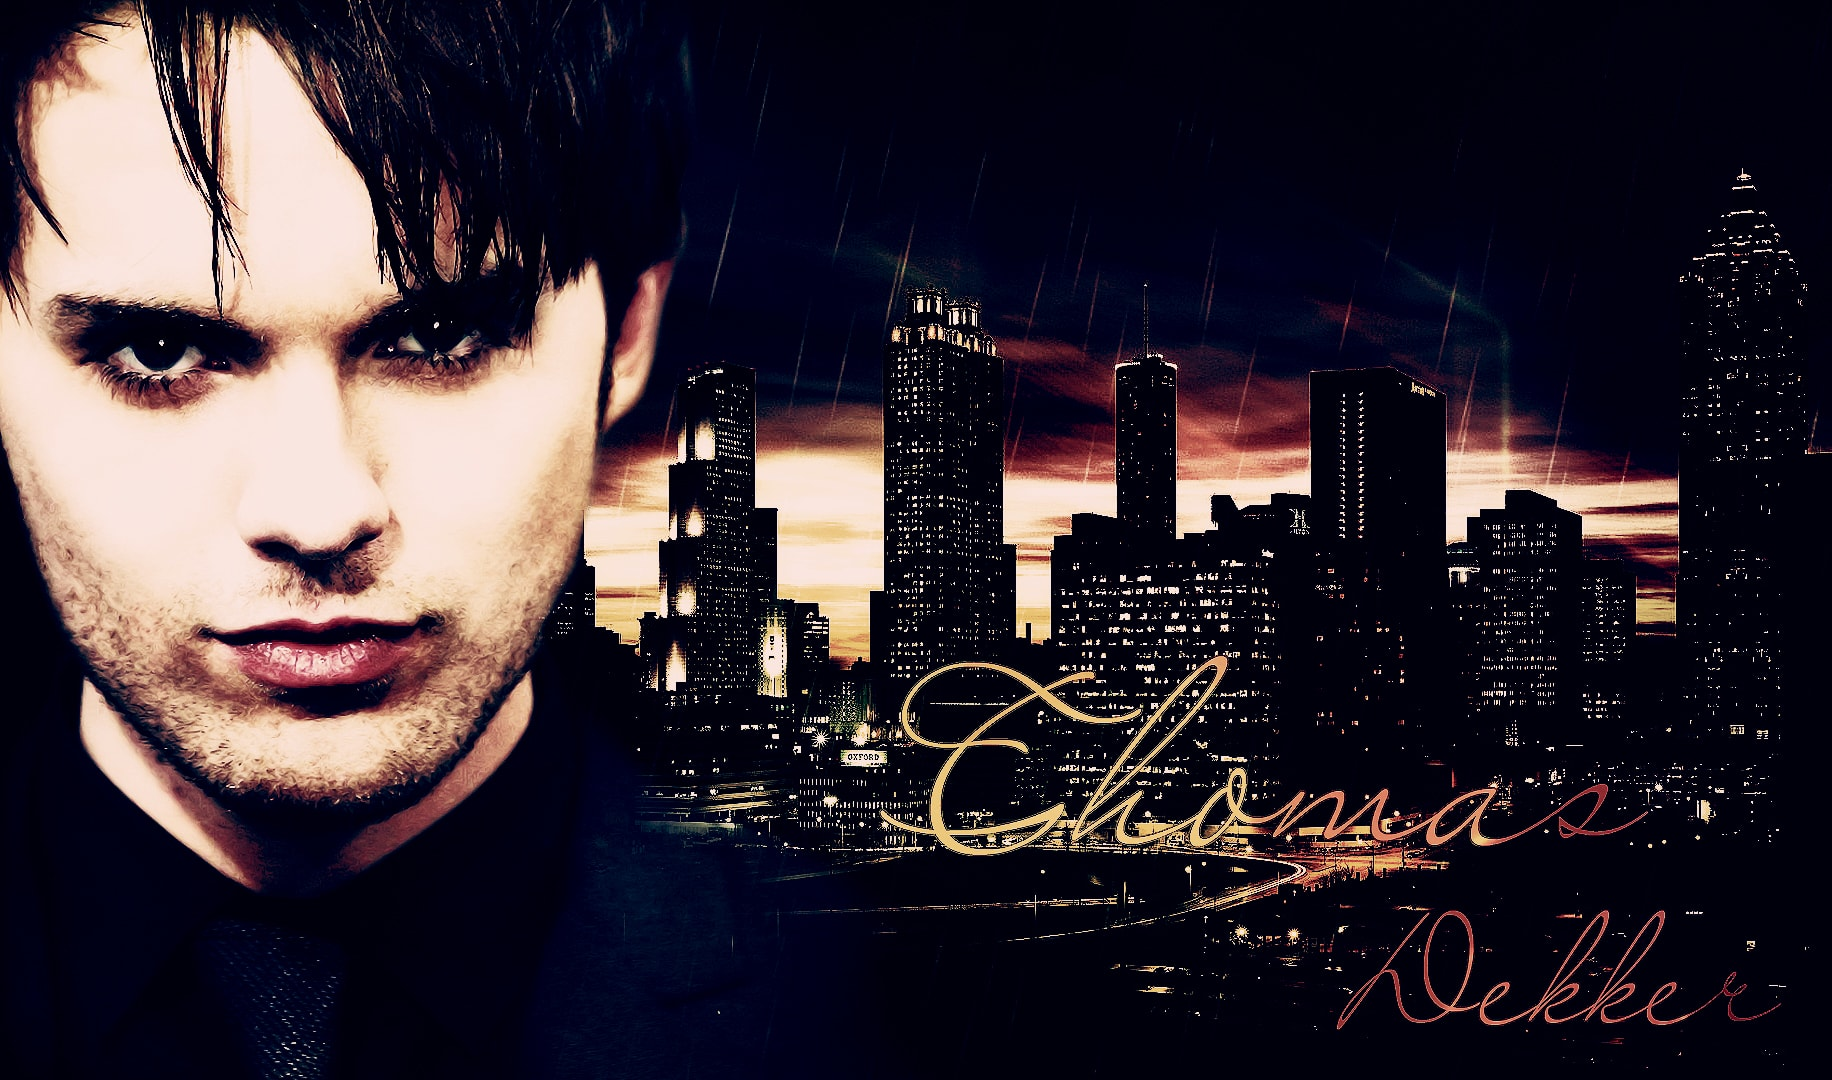 Thomas Dekker Wallpaper